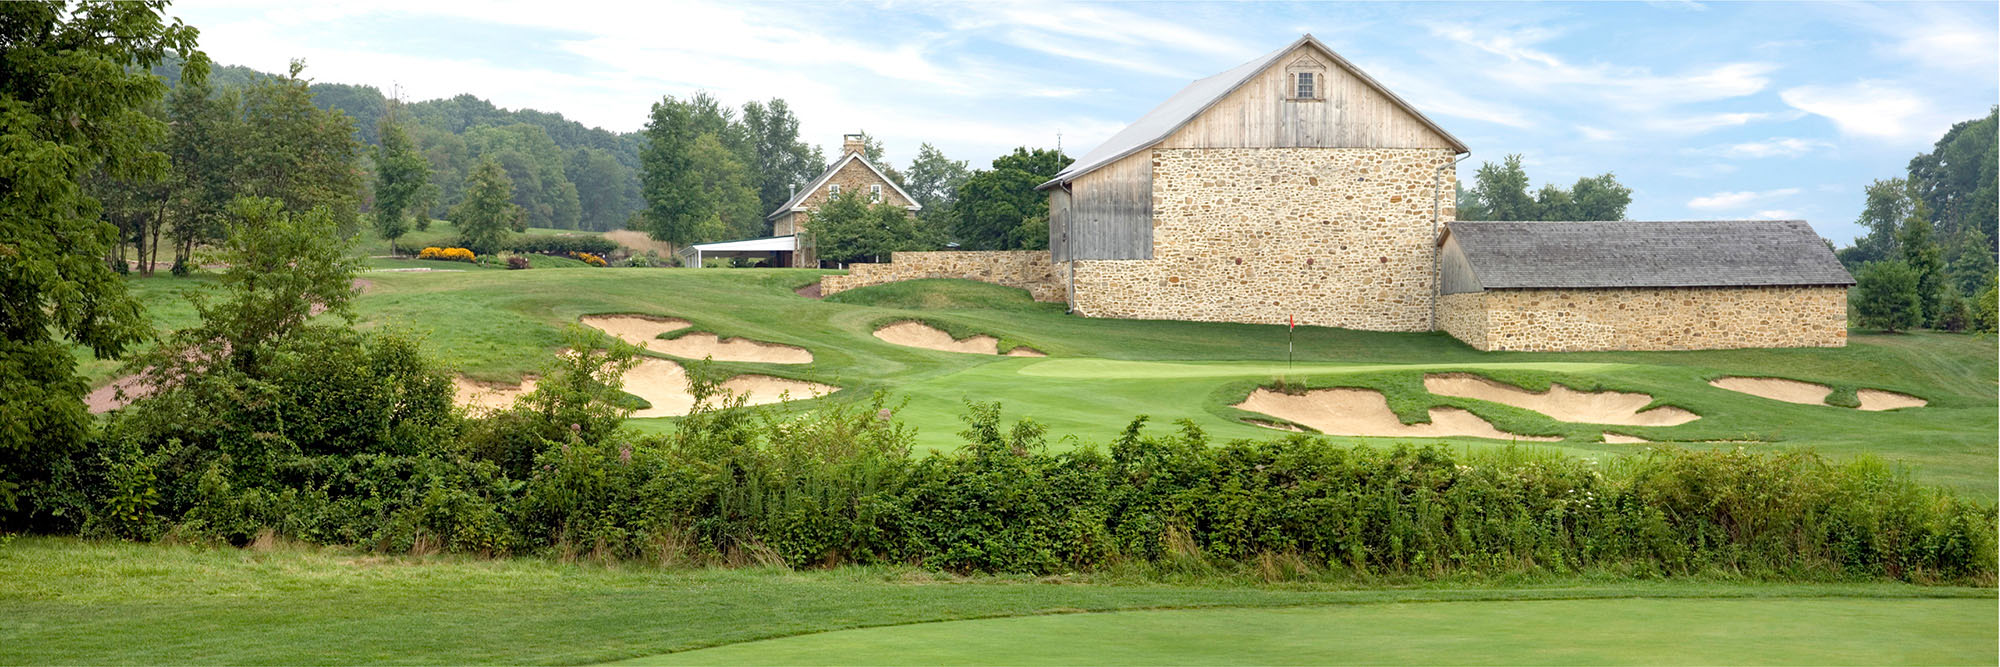 Golf Course Image - Stonewall North No. 18